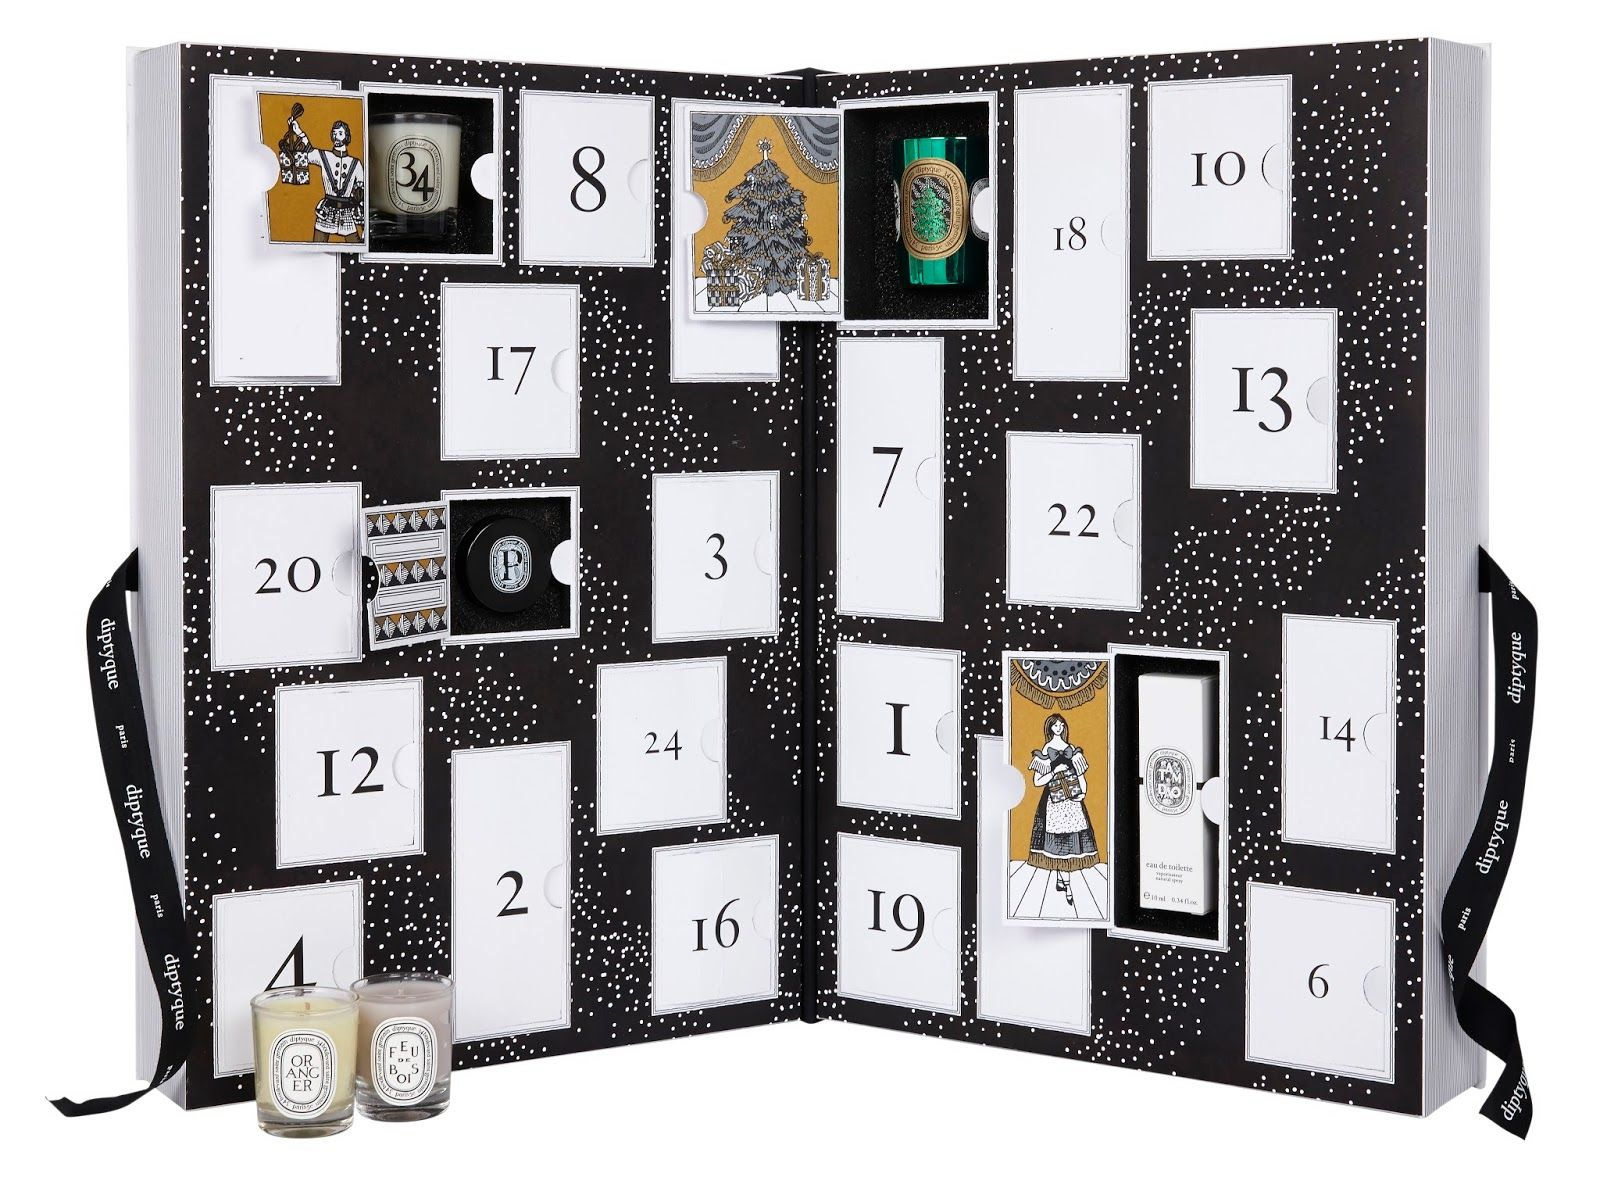 Diptyque Advent Calendar 2016 Beauty Advent Calendars Beauty Advent Calendar Christmas Advent Calendar Advent Calendar